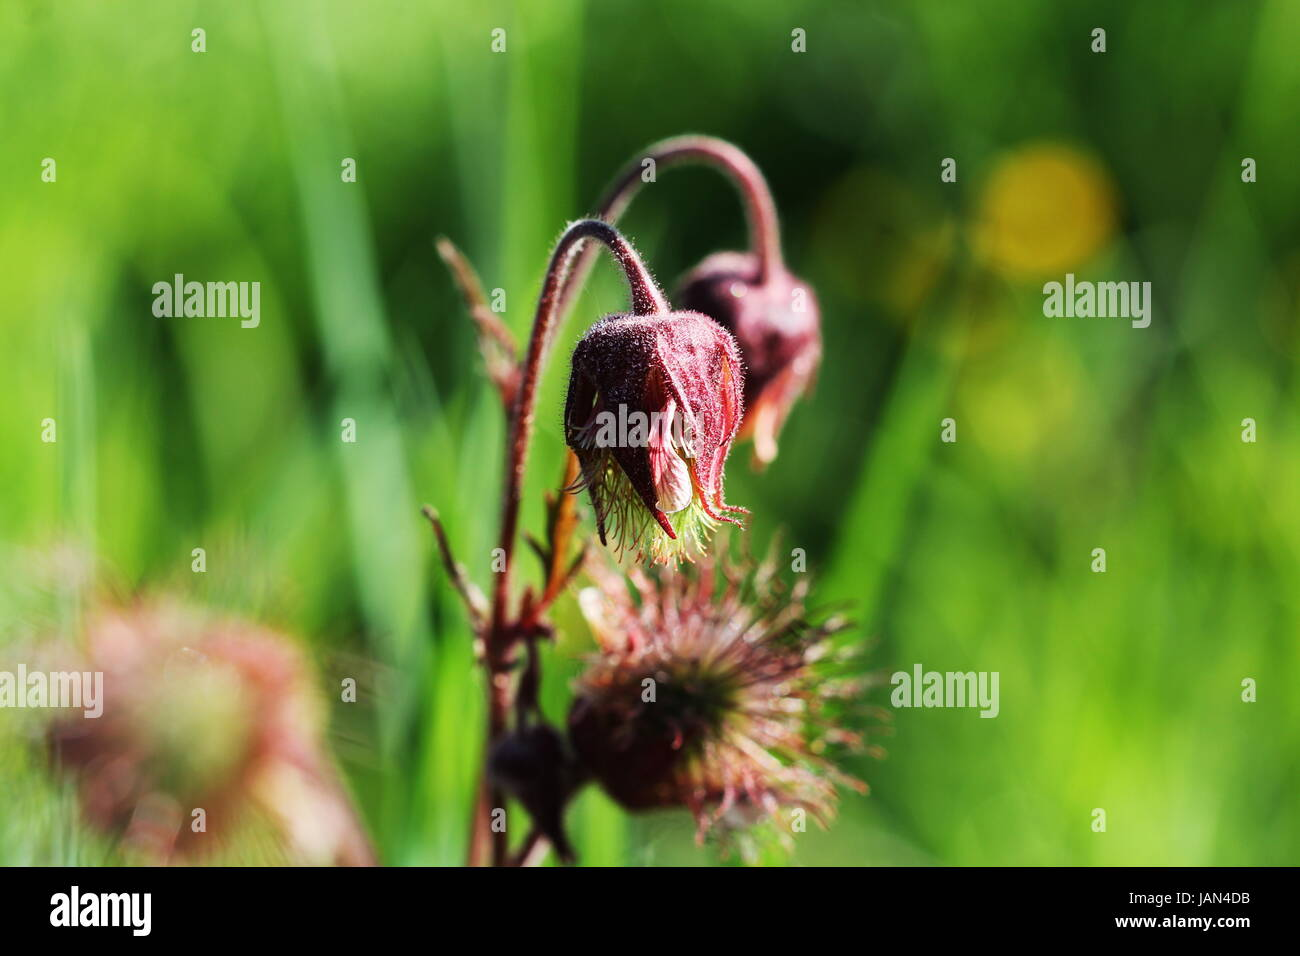 geum rivale, water avens, purple avens flower blooming - Stock Image